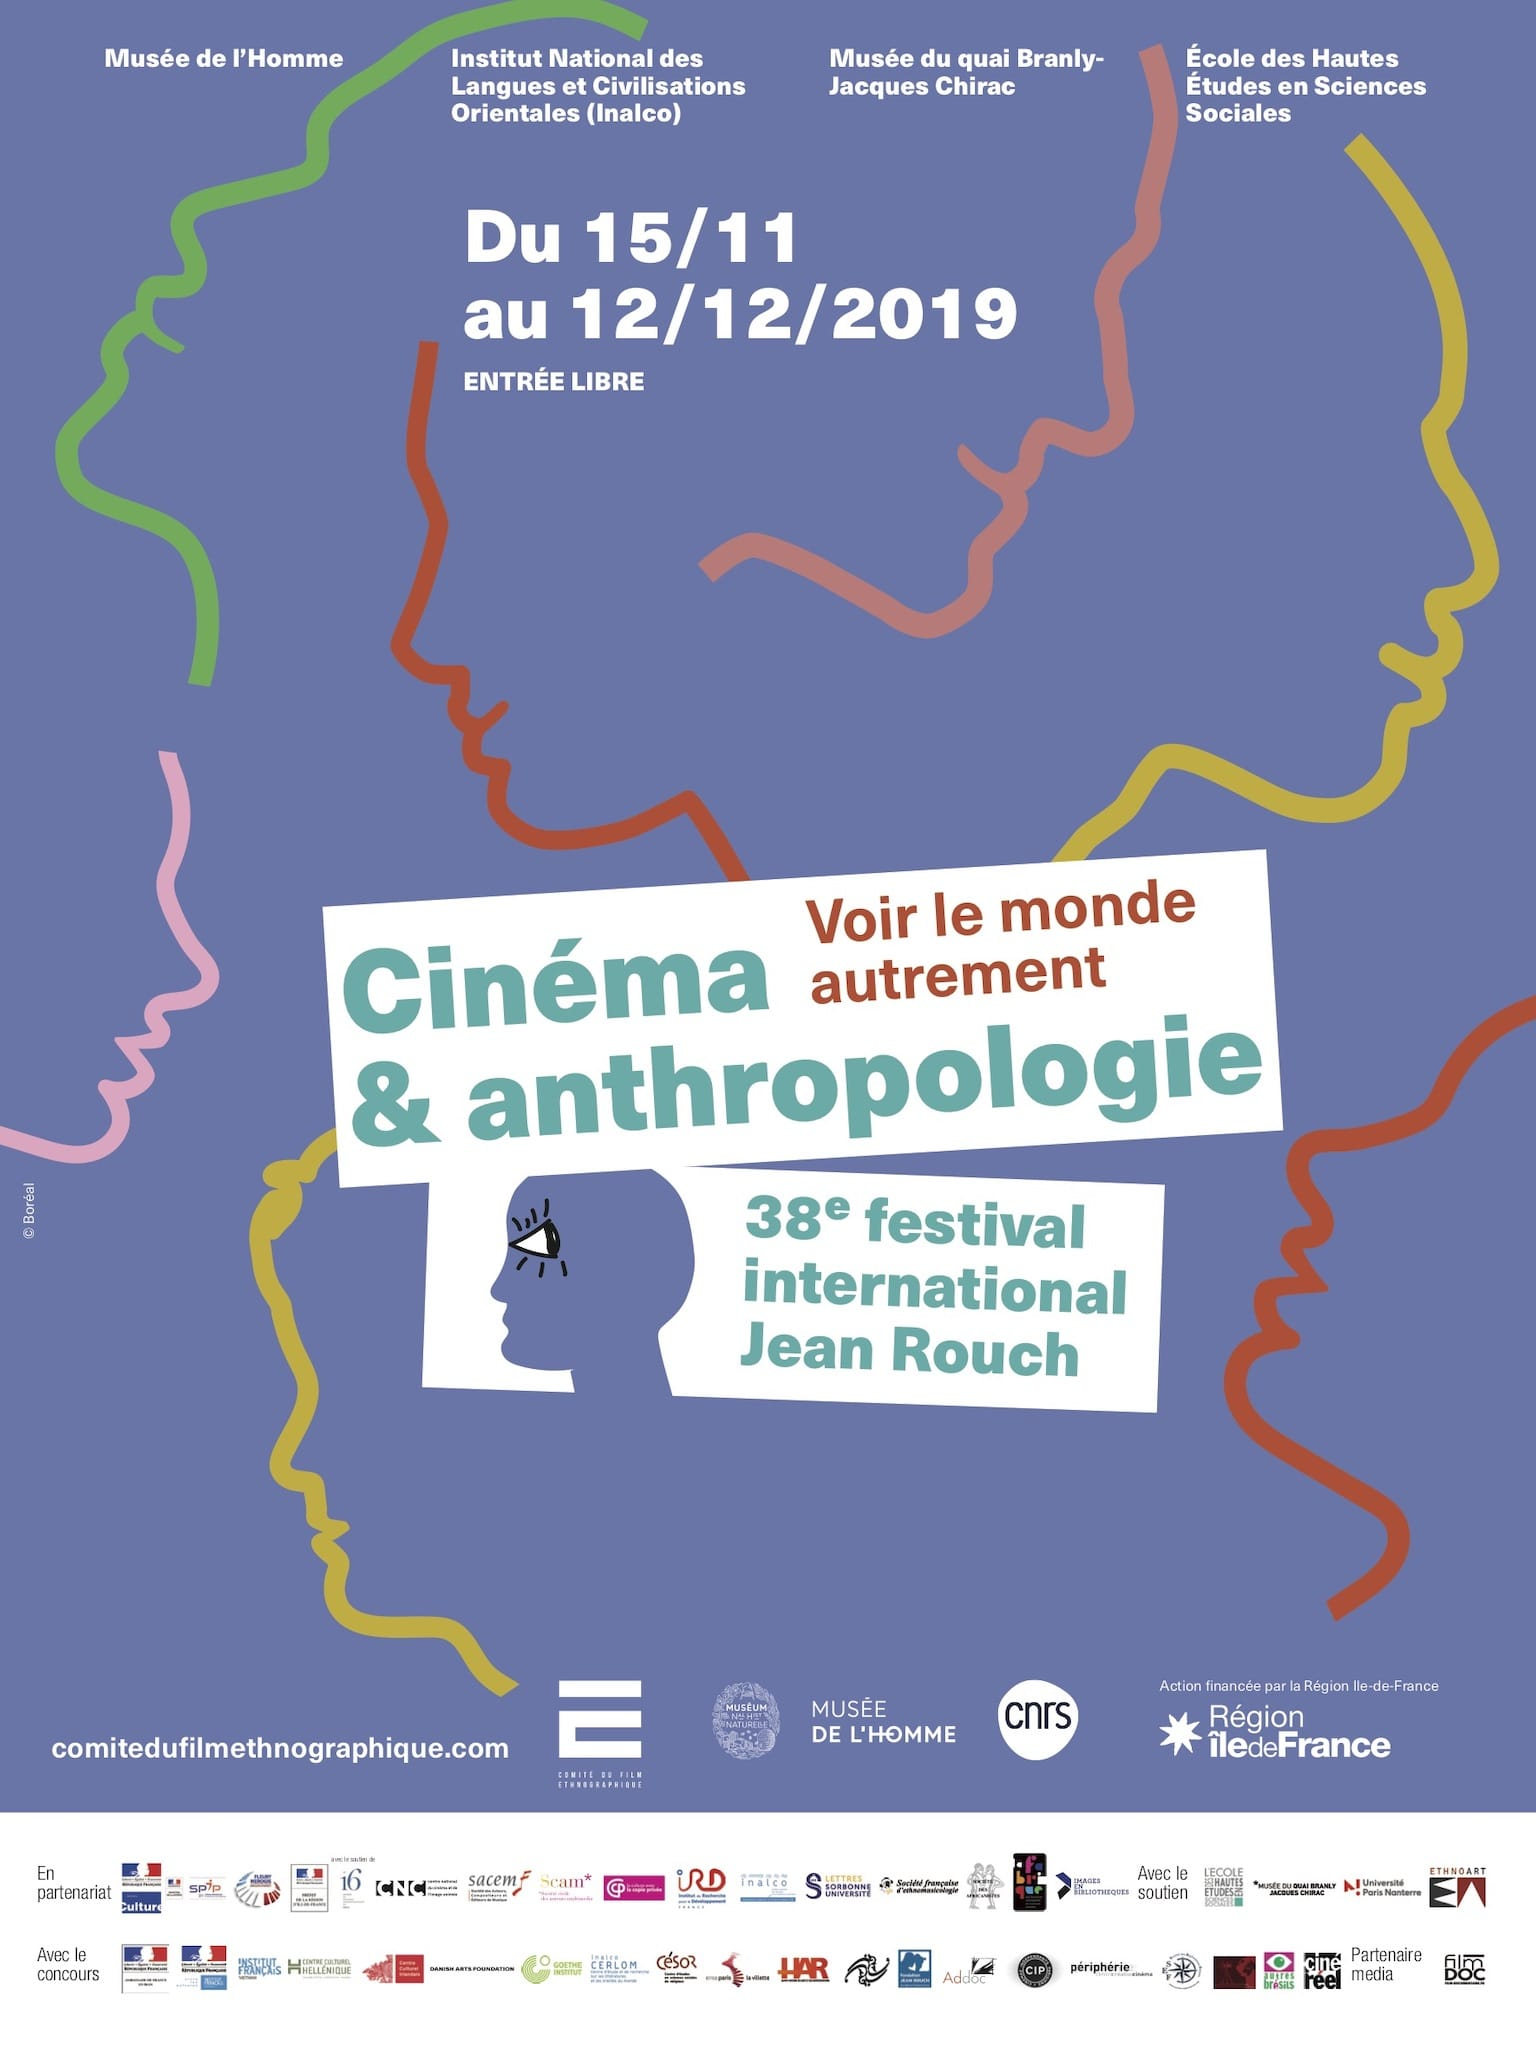 Festival International Jean Rouch 2019 affiche cinéma & anthropologie affiche